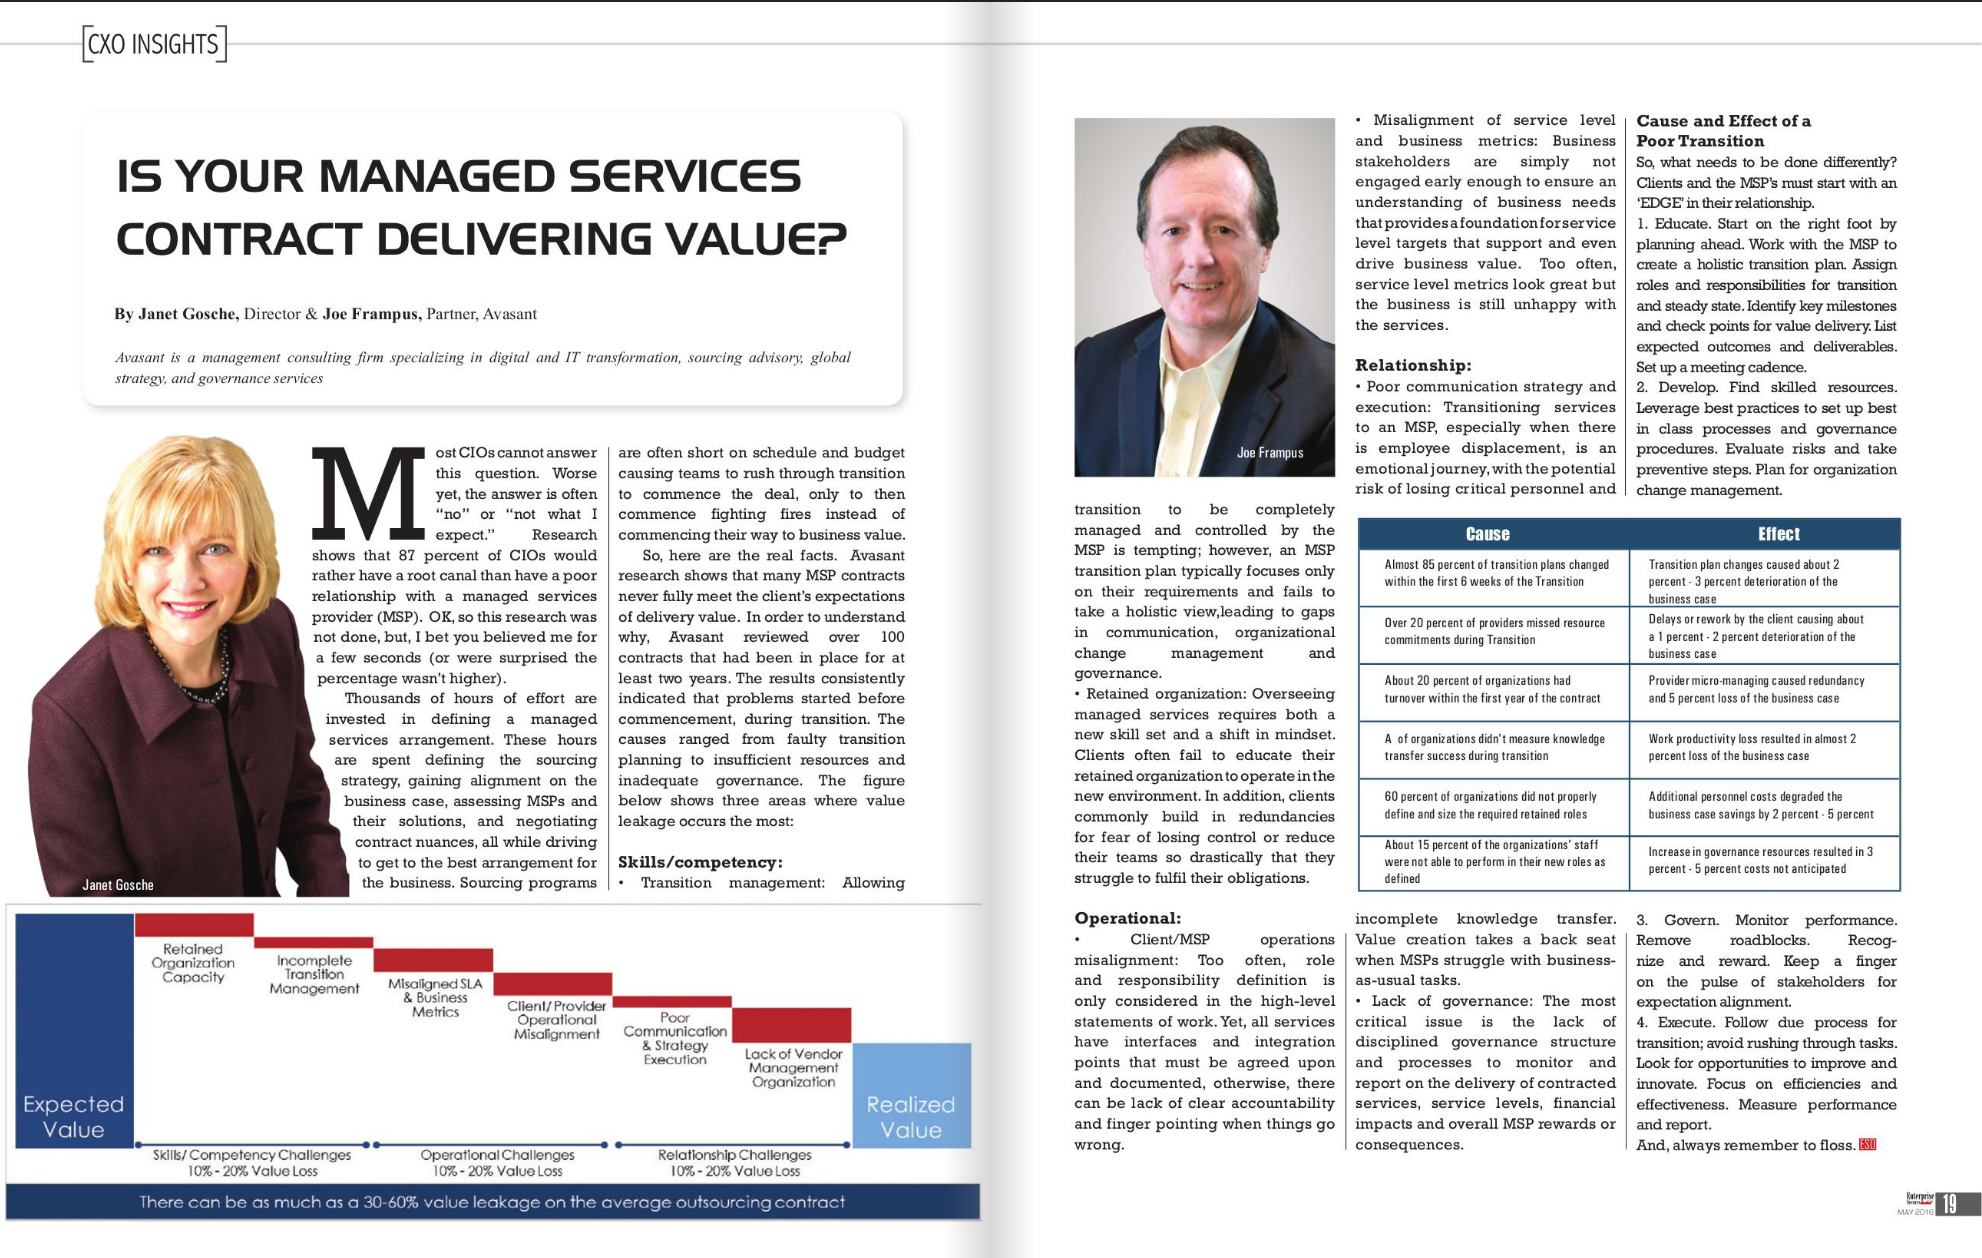 Is Your Managed Services Contract Delivering Value?